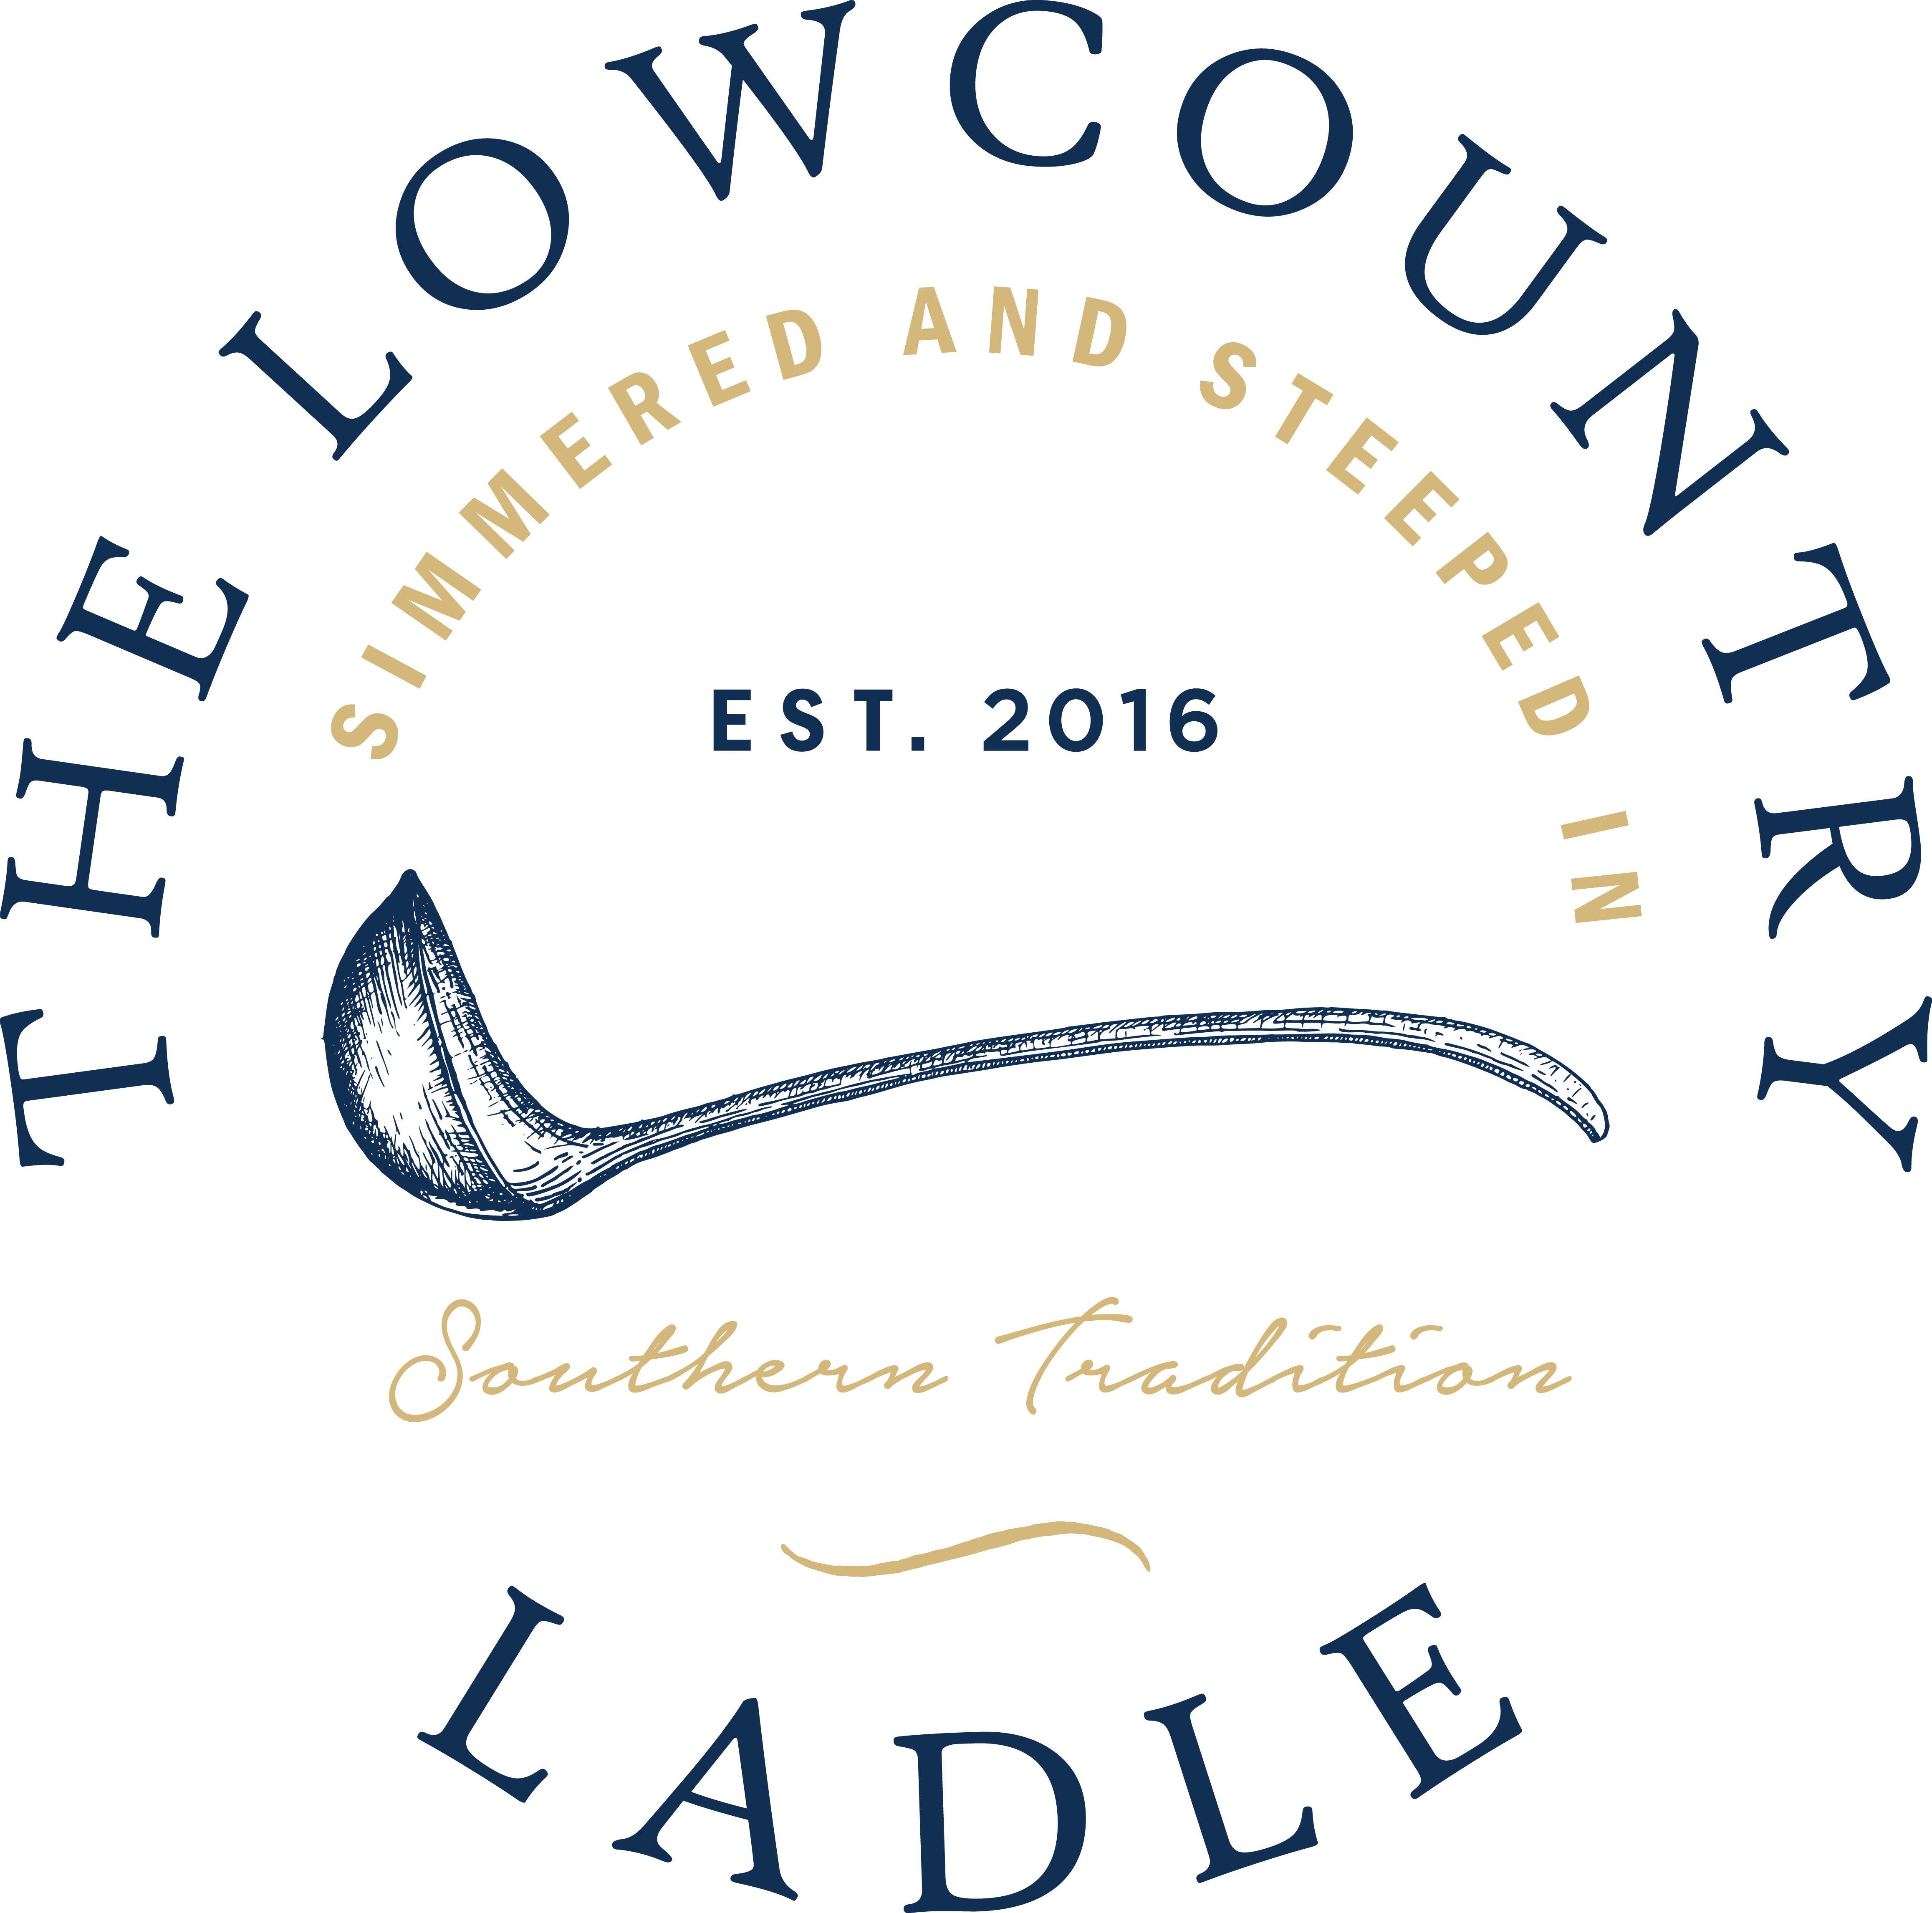 Create a logo for The Lowcountry Ladle, a Southern-family owned artisan foods company